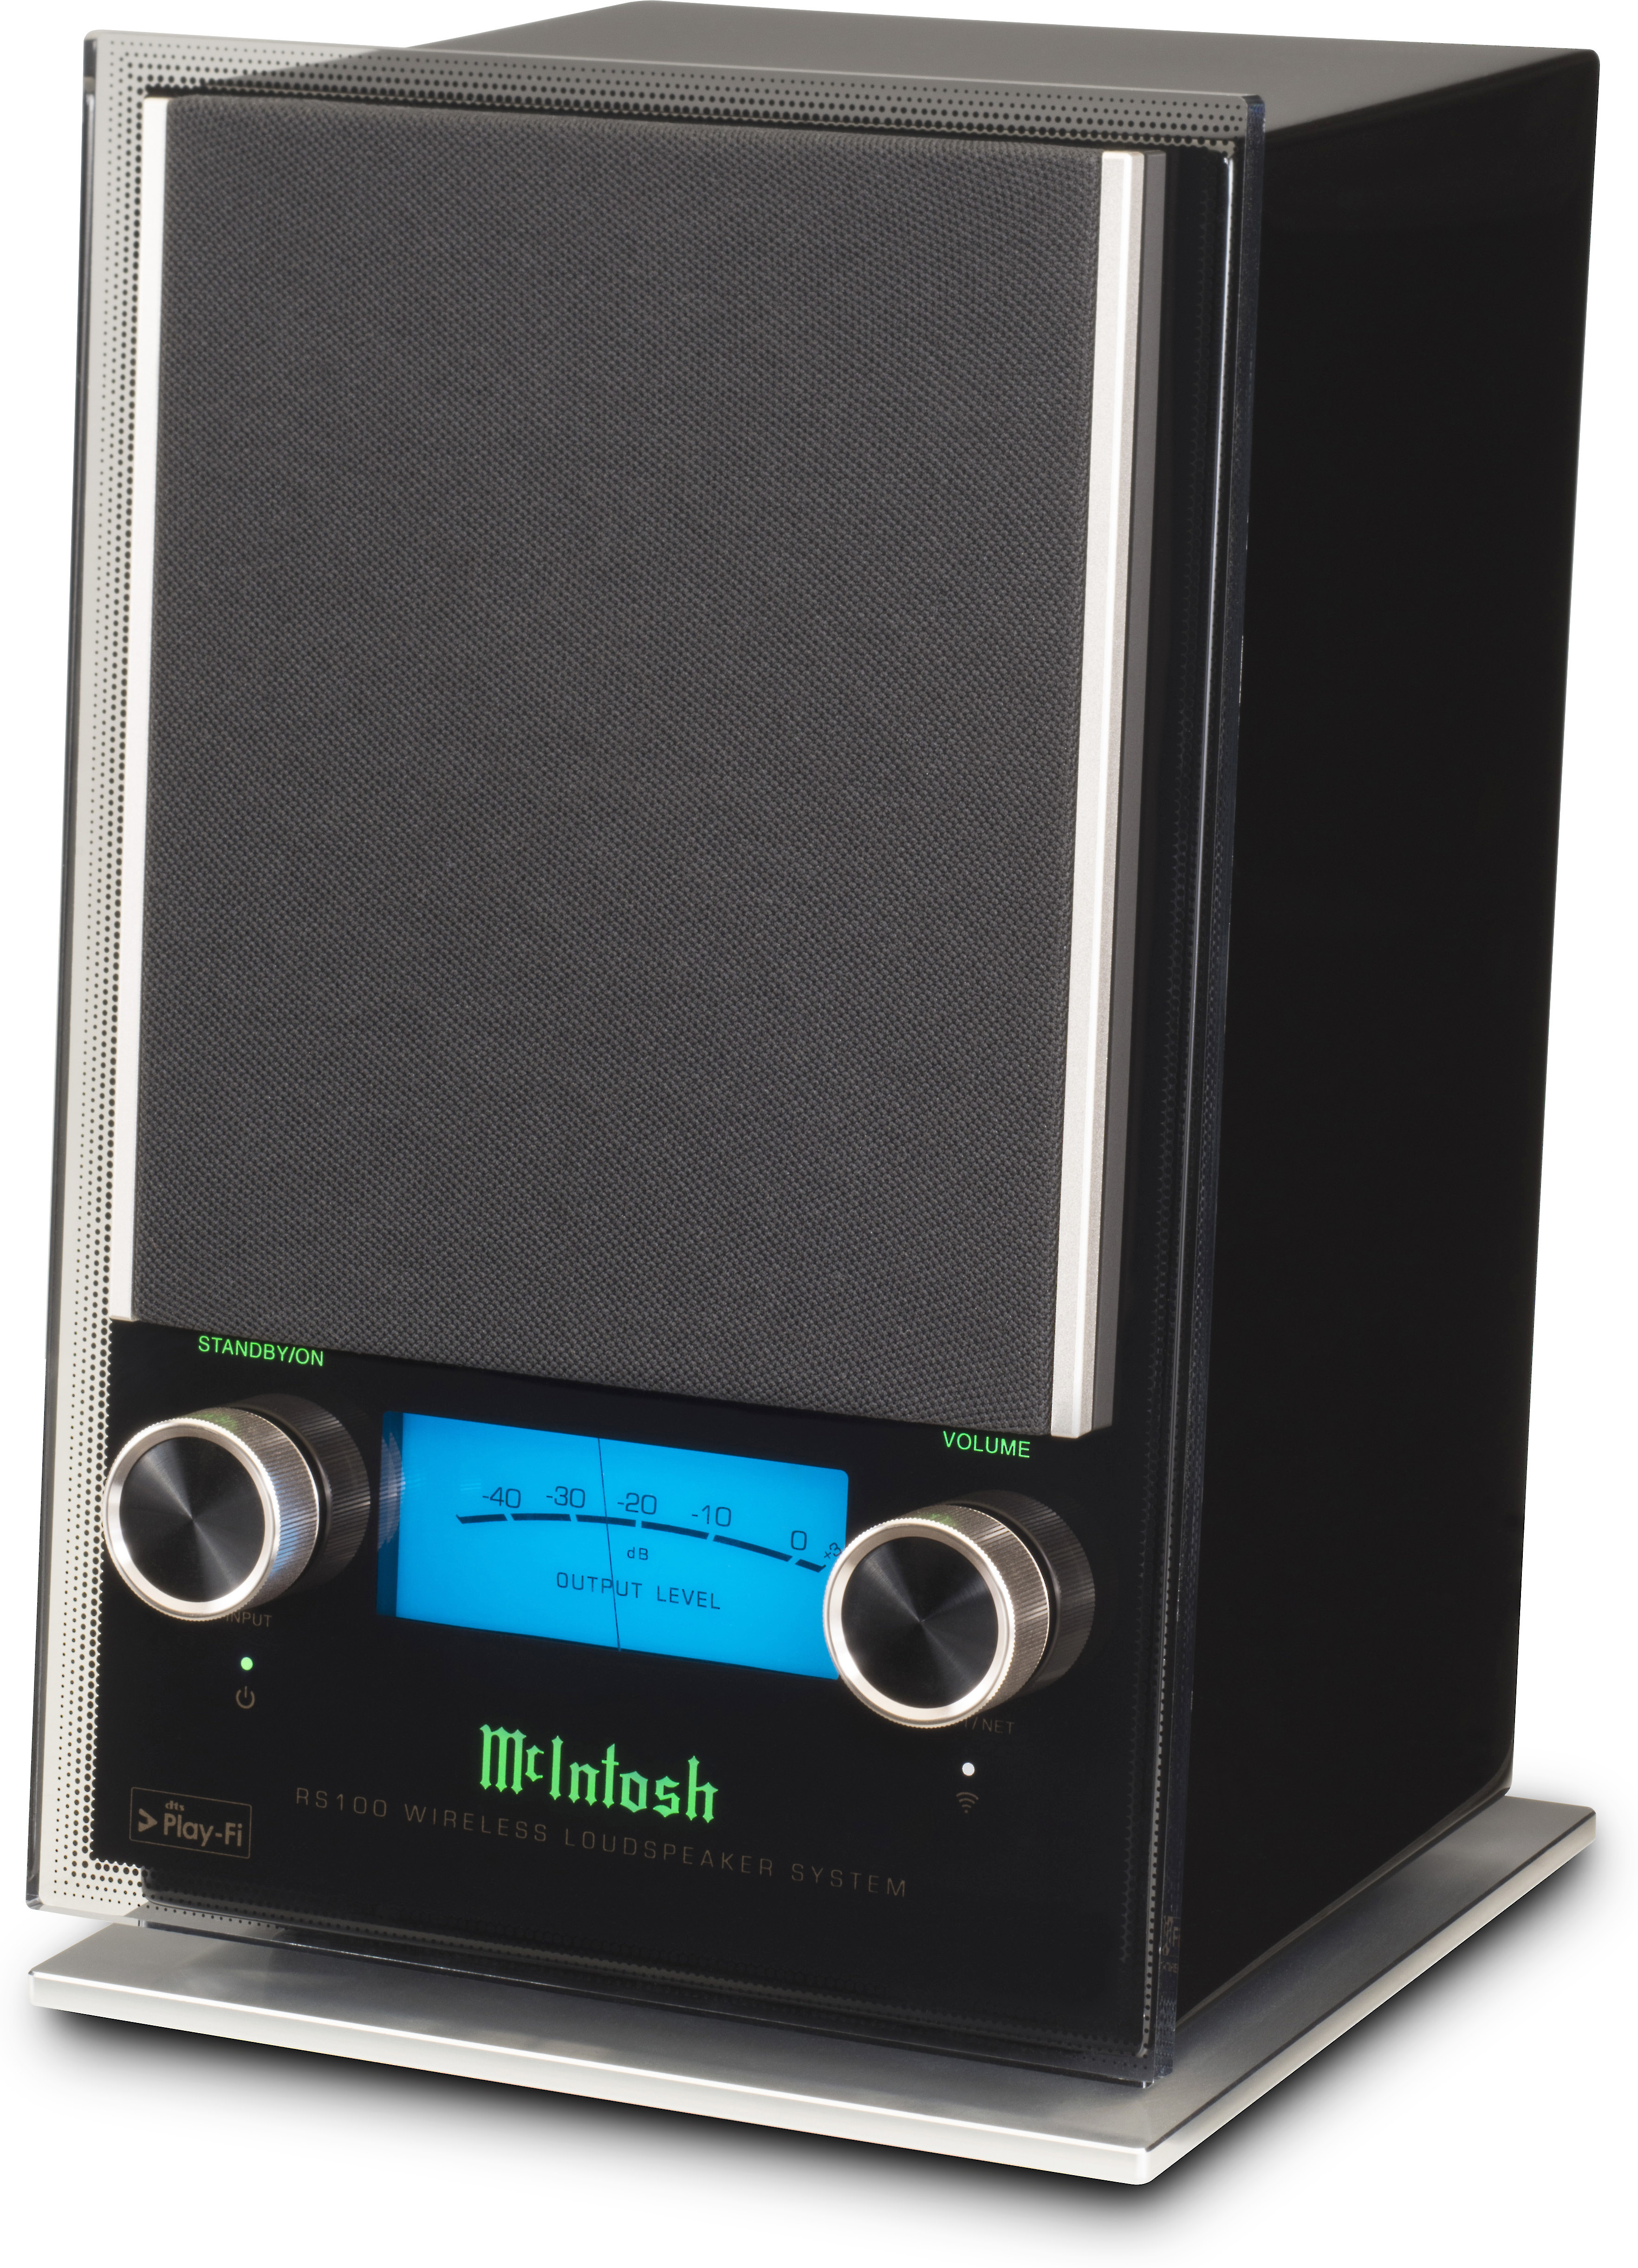 1a86d119c49 McIntosh RS100 Wireless loudspeaker system with built-in Wi-Fi® and DTS  Play-Fi® at Crutchfield.com